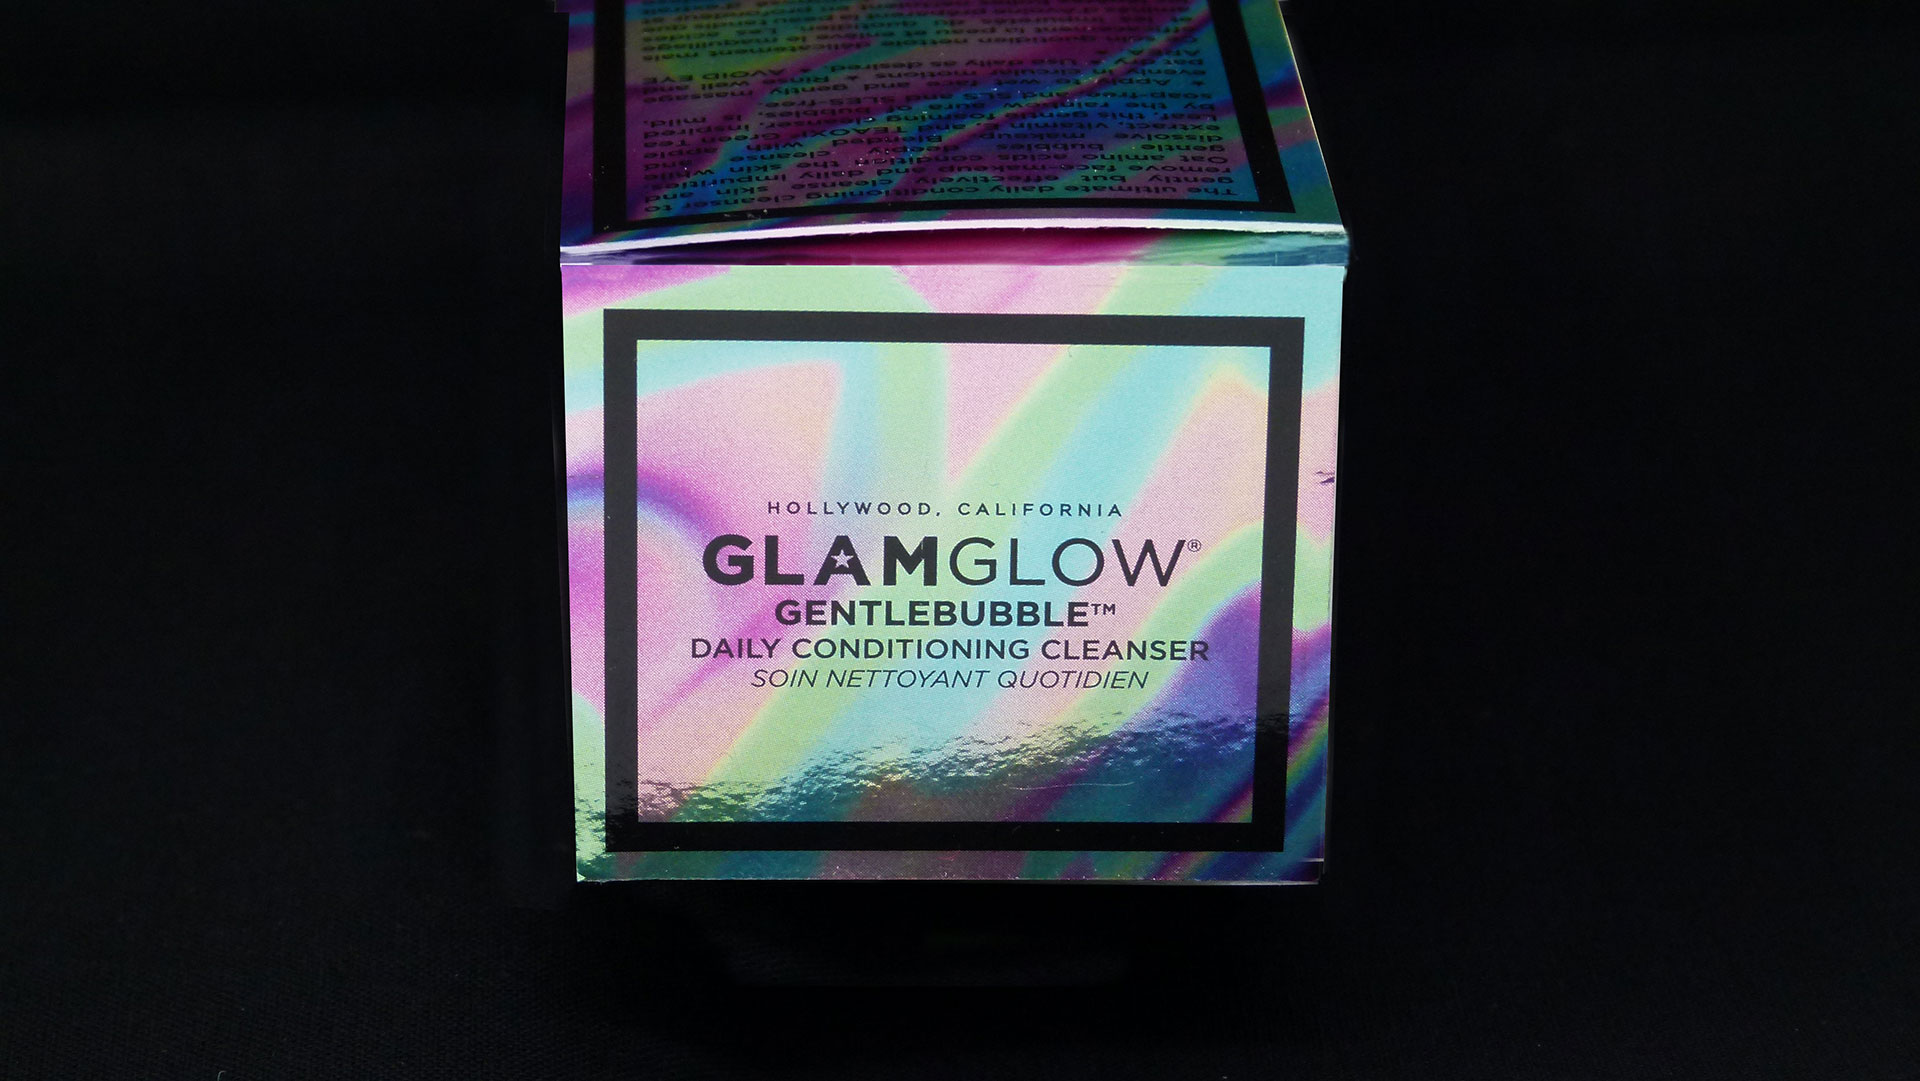 GLAMGLOW packaging from Mainline Holographics